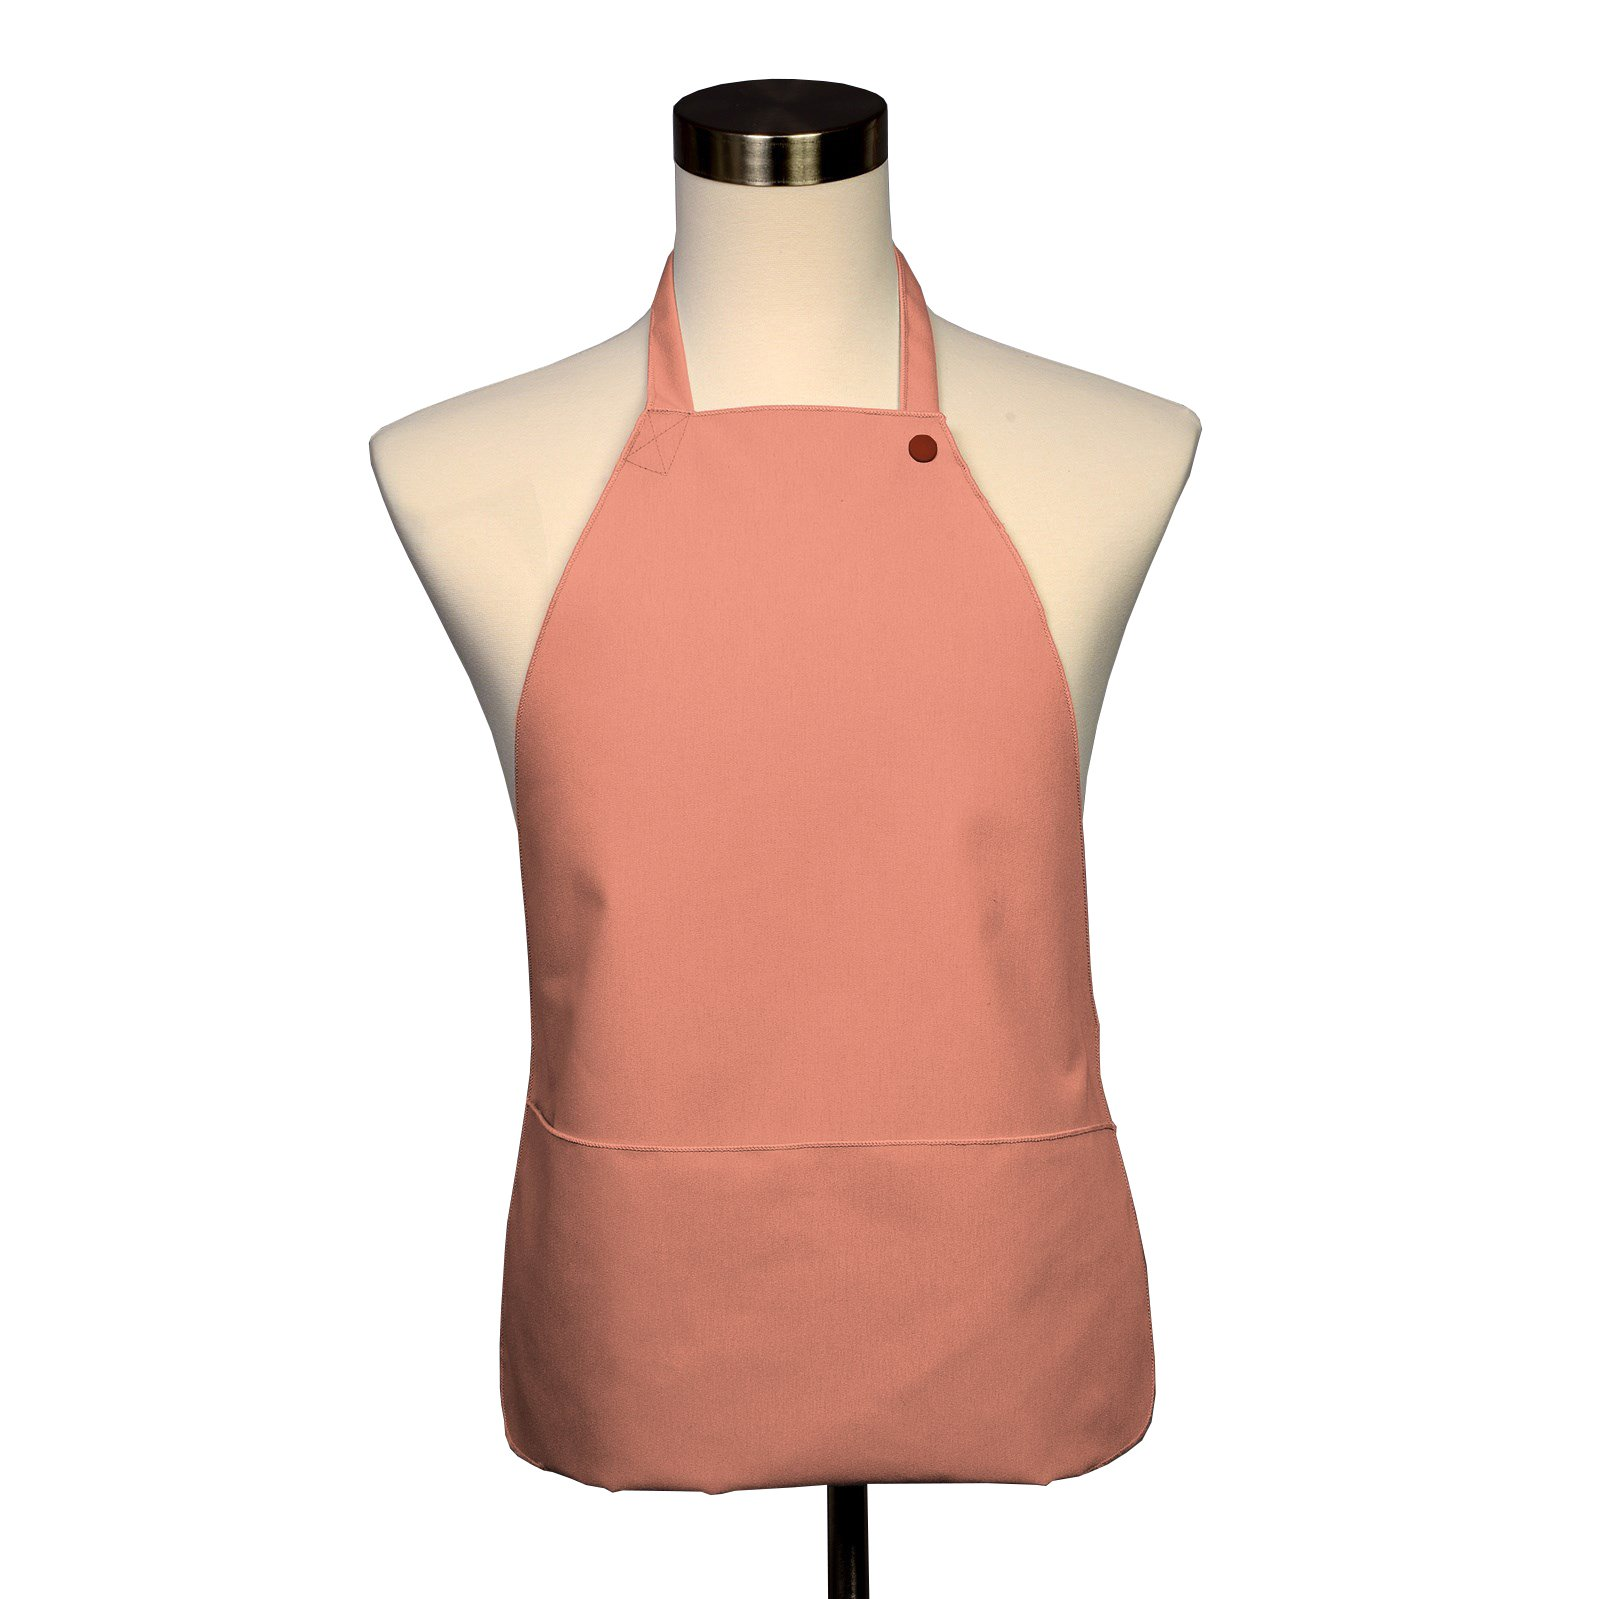 Adult Bib 25 Pack - Covered with Care Assorted Colors Available! (Peach)